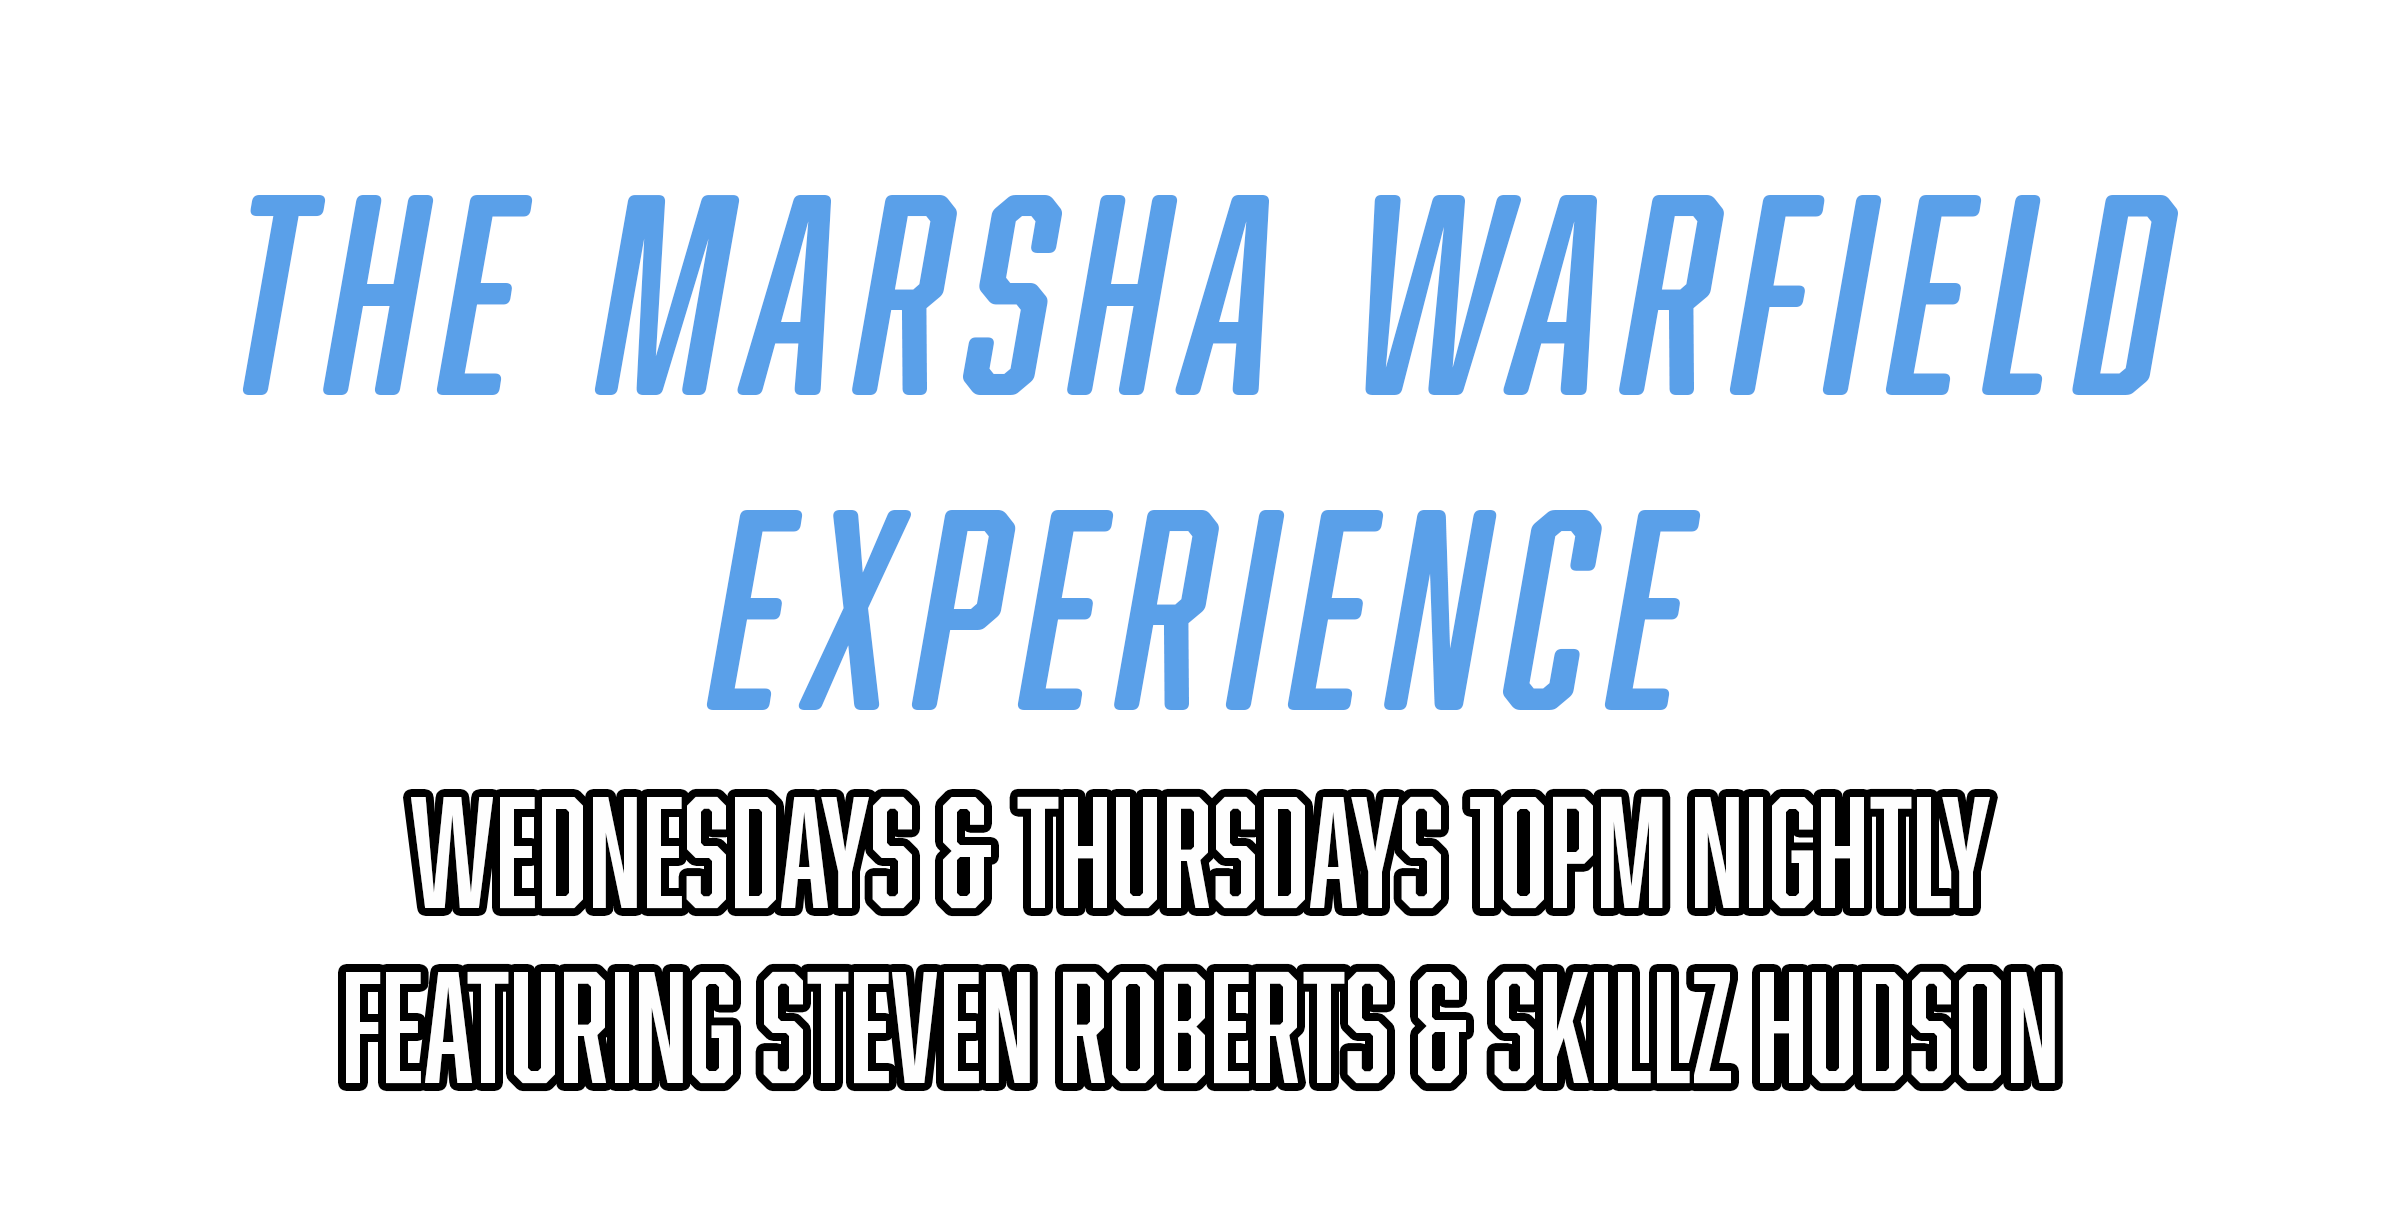 marsha warfield homepage.png